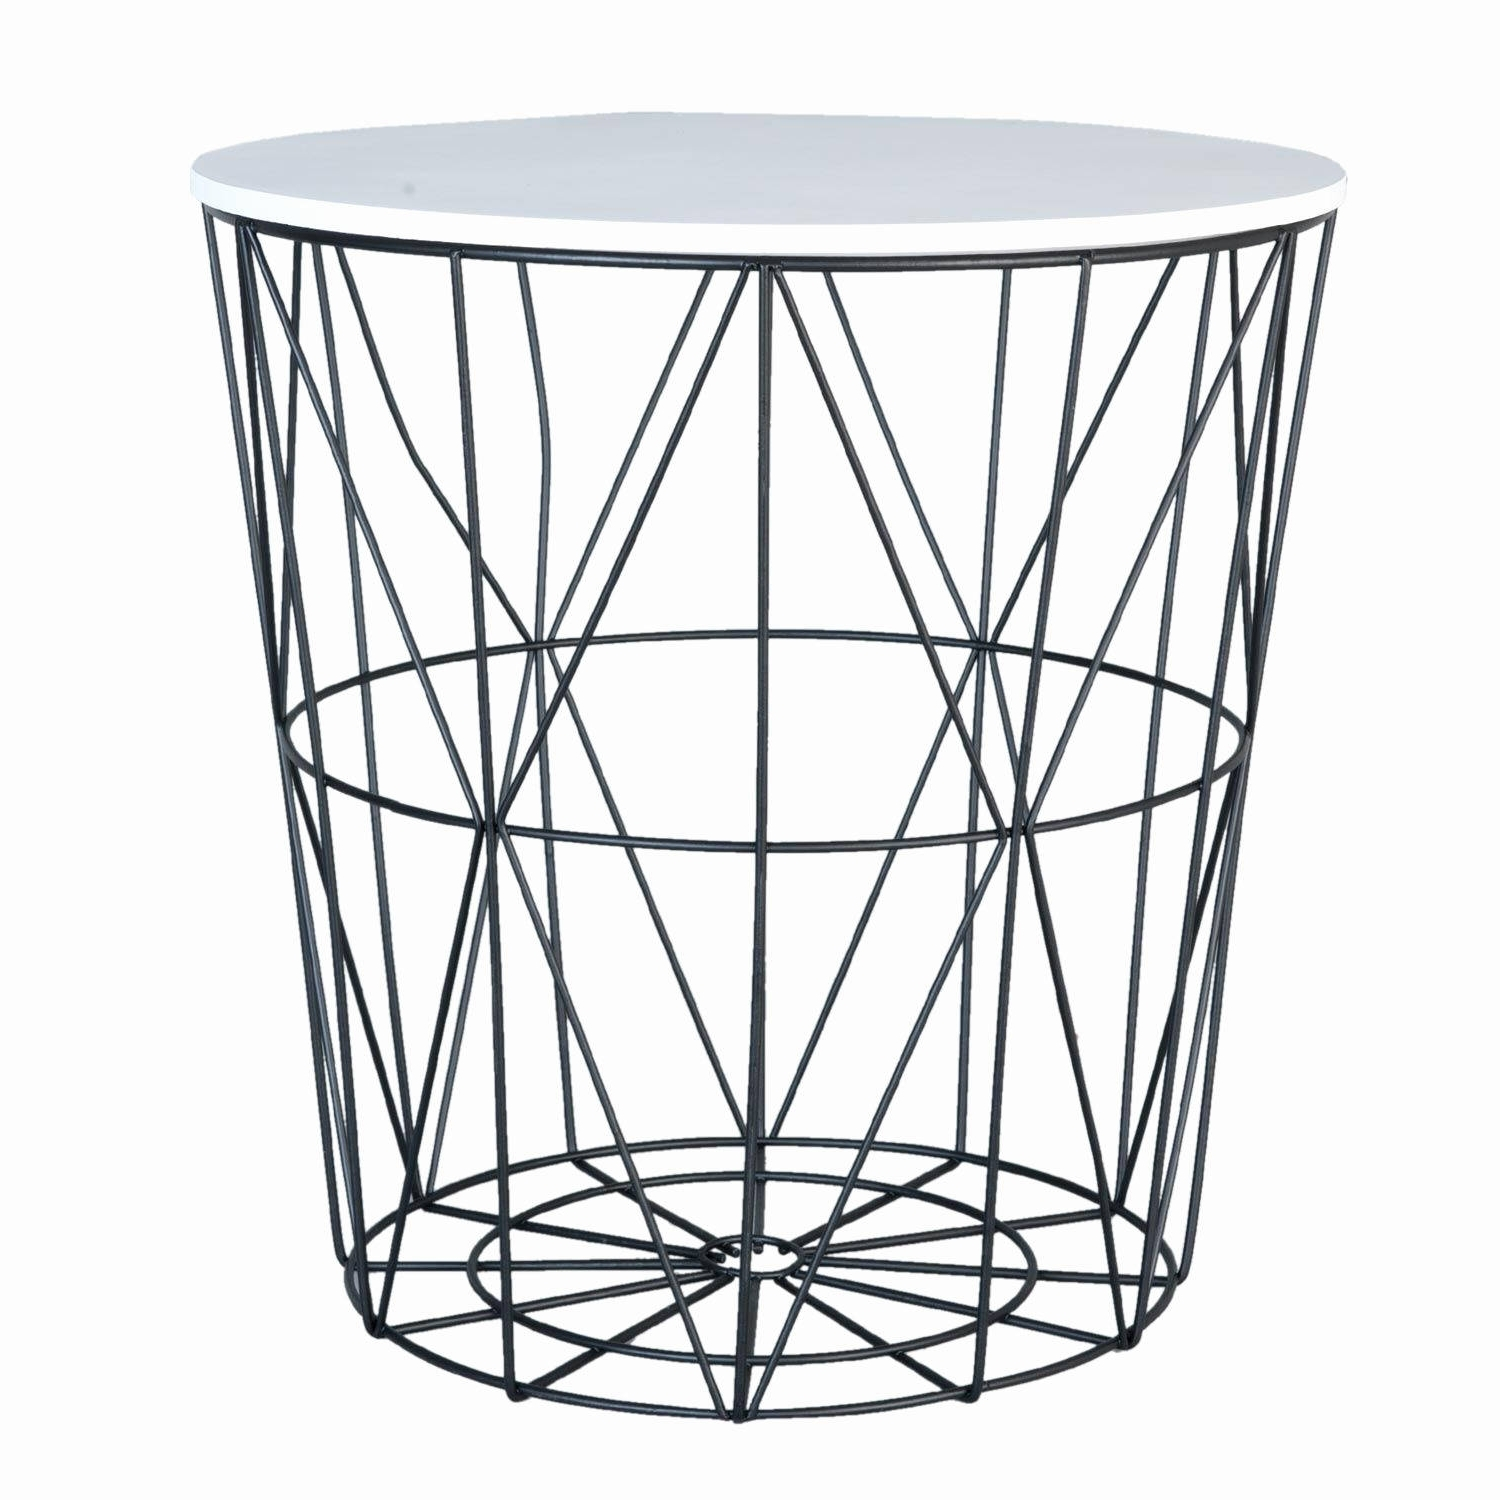 White Coffee Table Black Legs Awesome White Black Geometric Side With Widely Used Black Wire Coffee Tables (View 19 of 20)